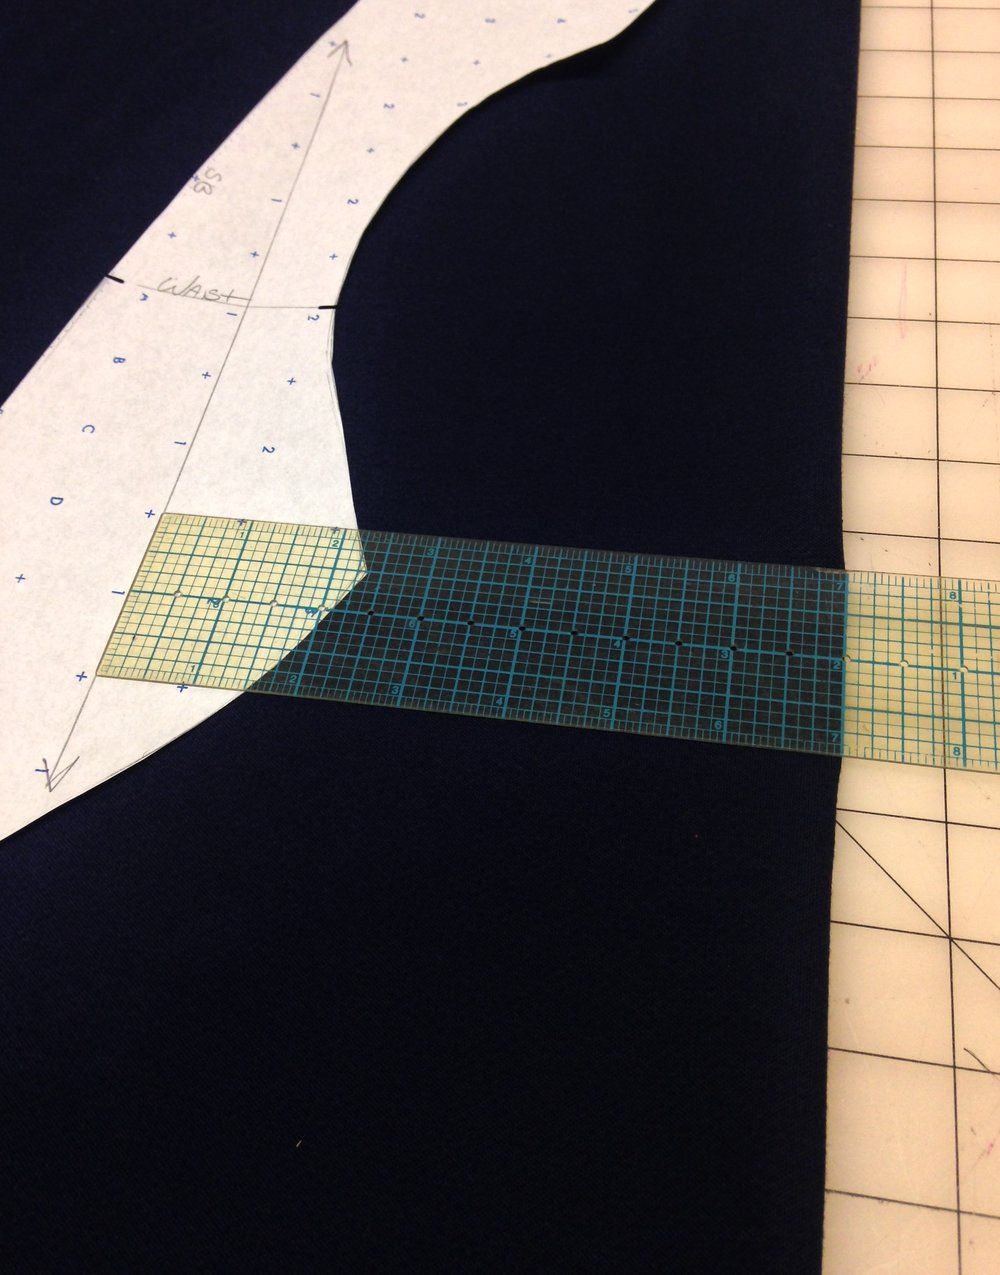 Time to trace the pattern onto fabric. I use a ruler to check my straight of grain mark.